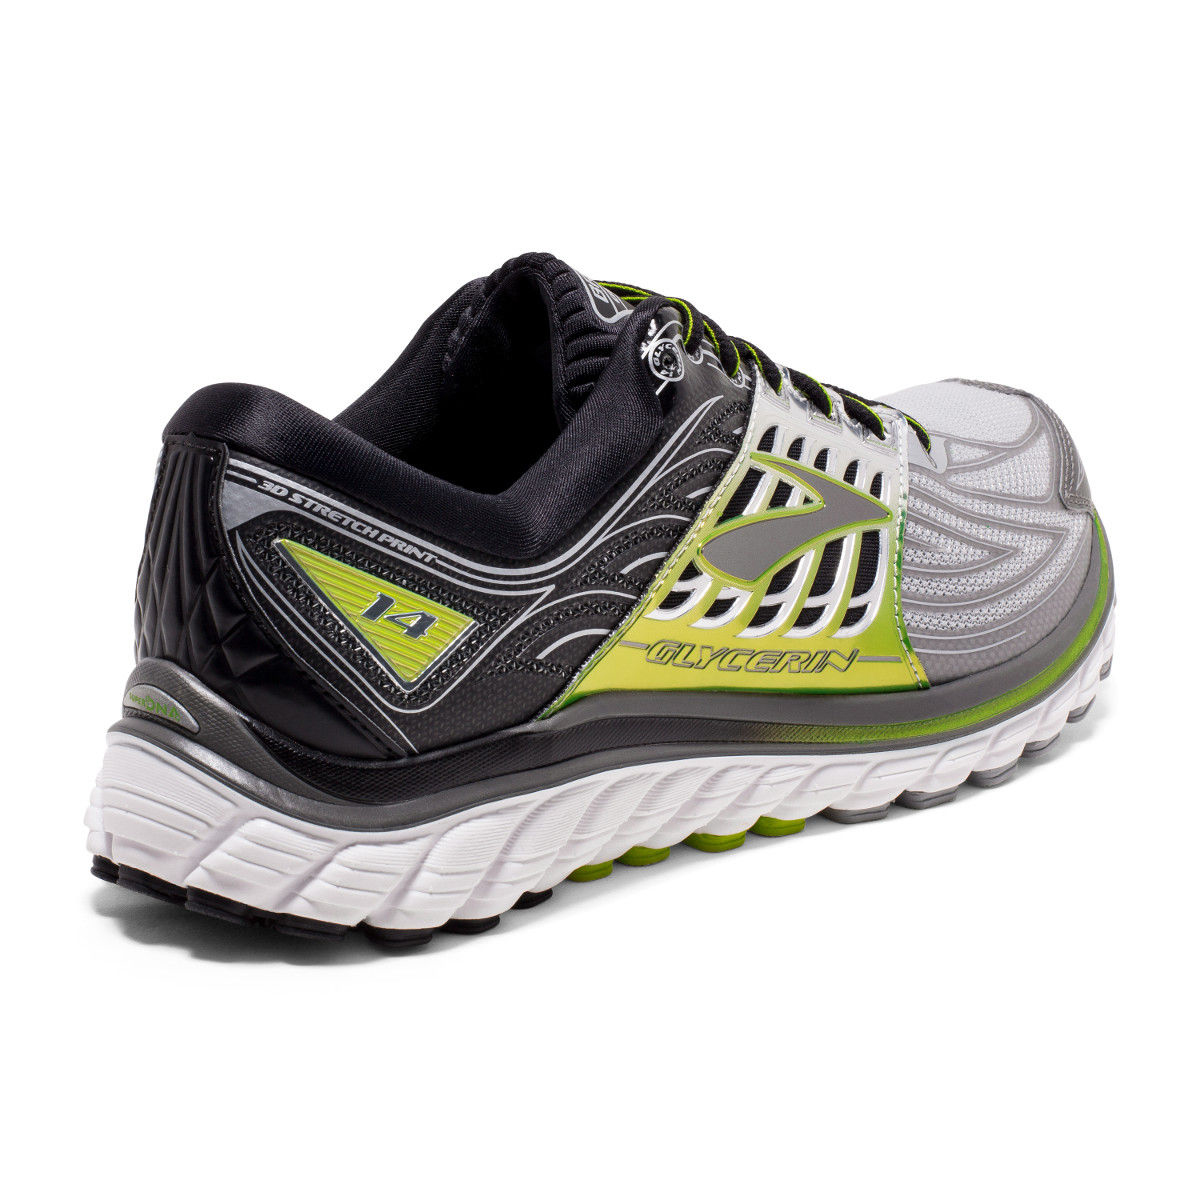 cd3ff0c50c7f26 Brooks Glycerin 14 Road Run Shoes - Men s